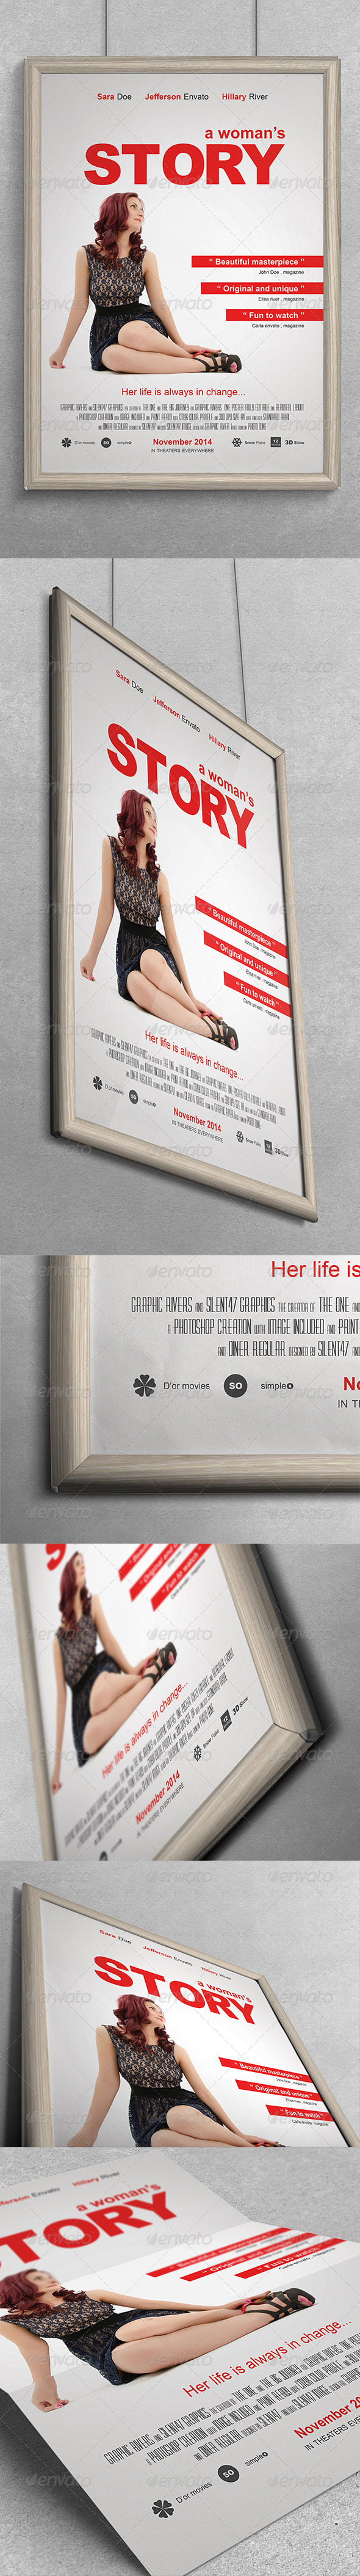 GraphicRiver A Womans Story Movie Poster 7045107